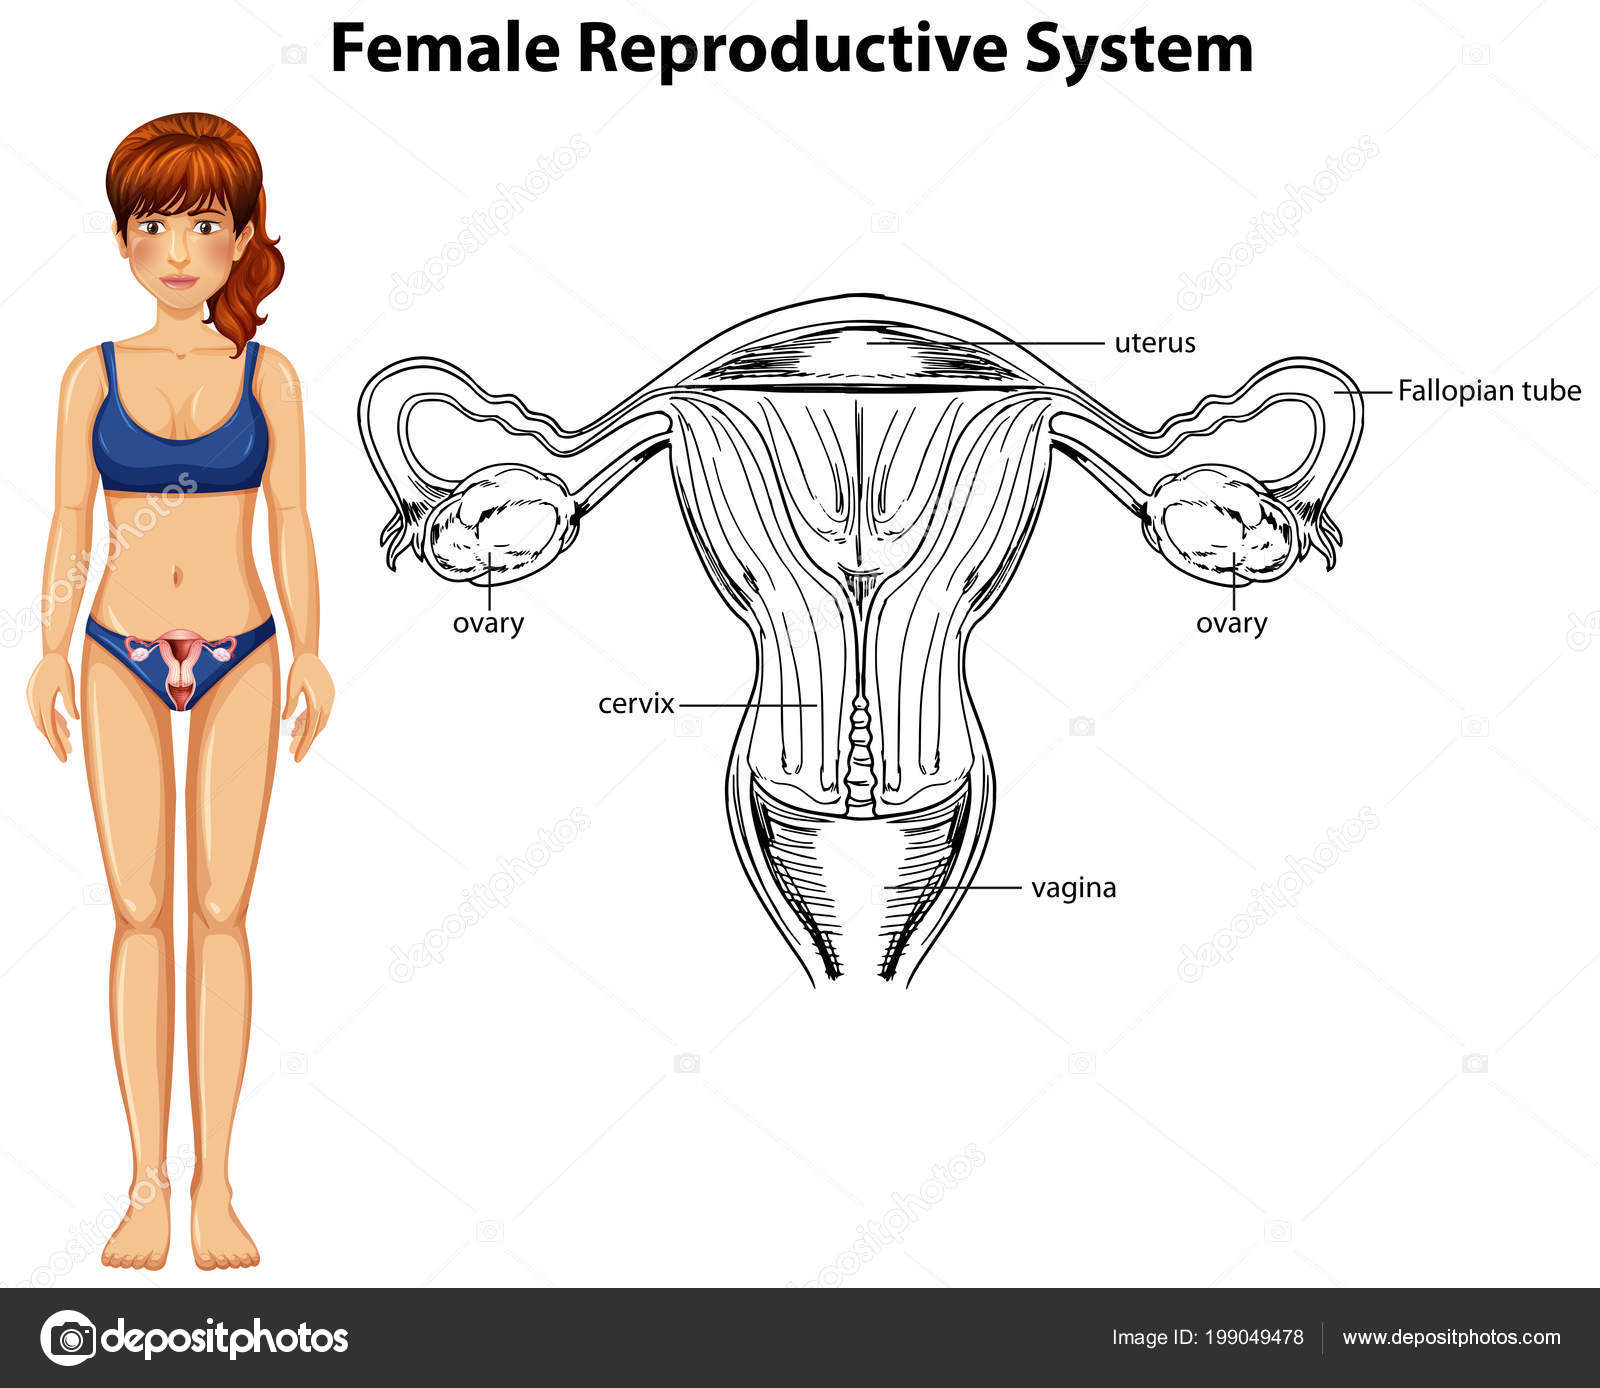 Human Anatomy Female Reproductive System Illustration Stock Vector